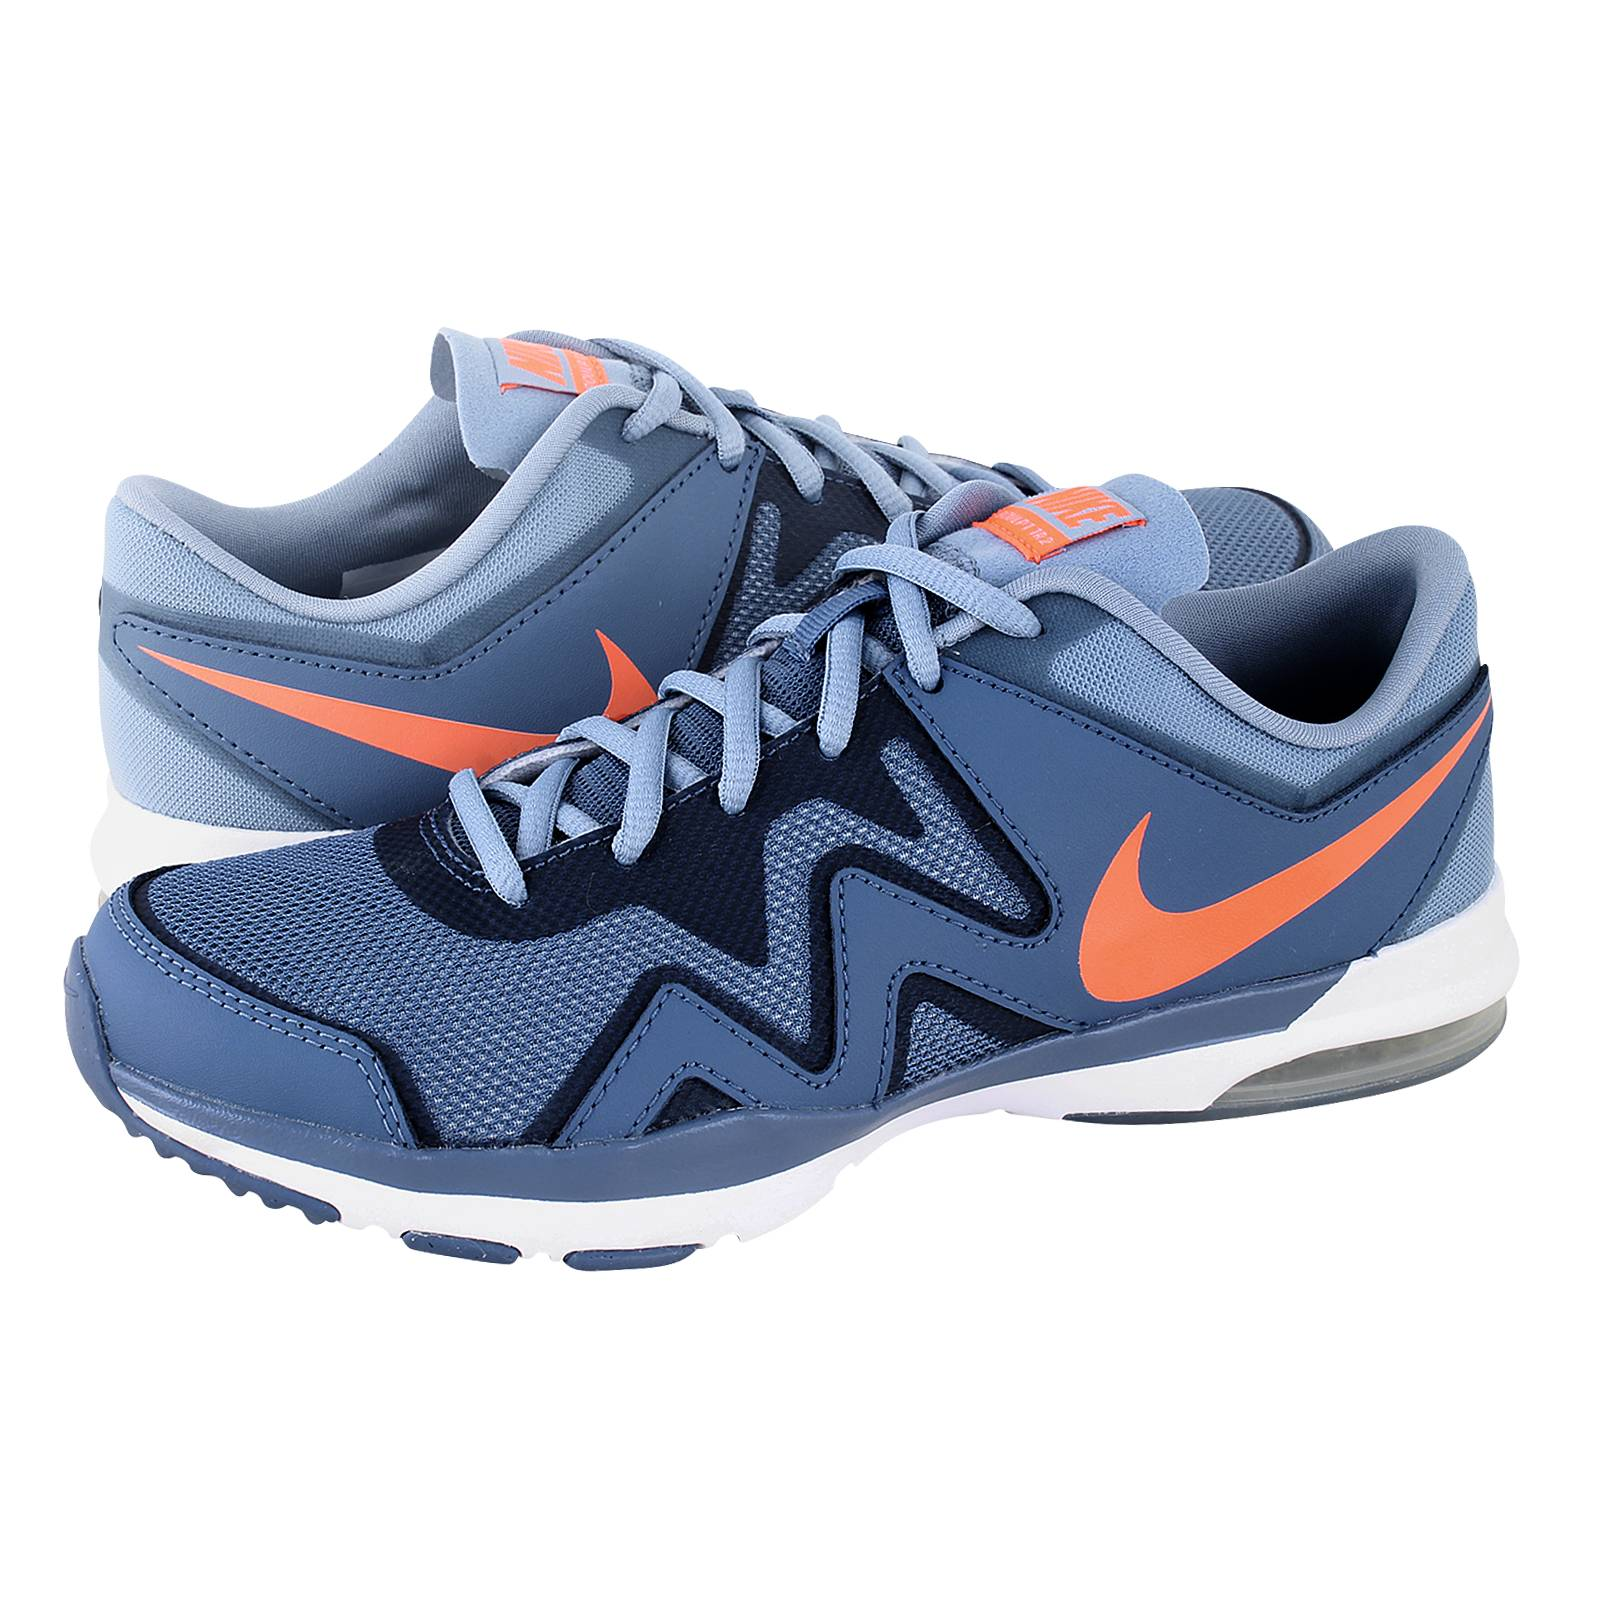 Air Sculpt TR 2 - Nike Women s athletic shoes made of synthetic ... 14eb094c4